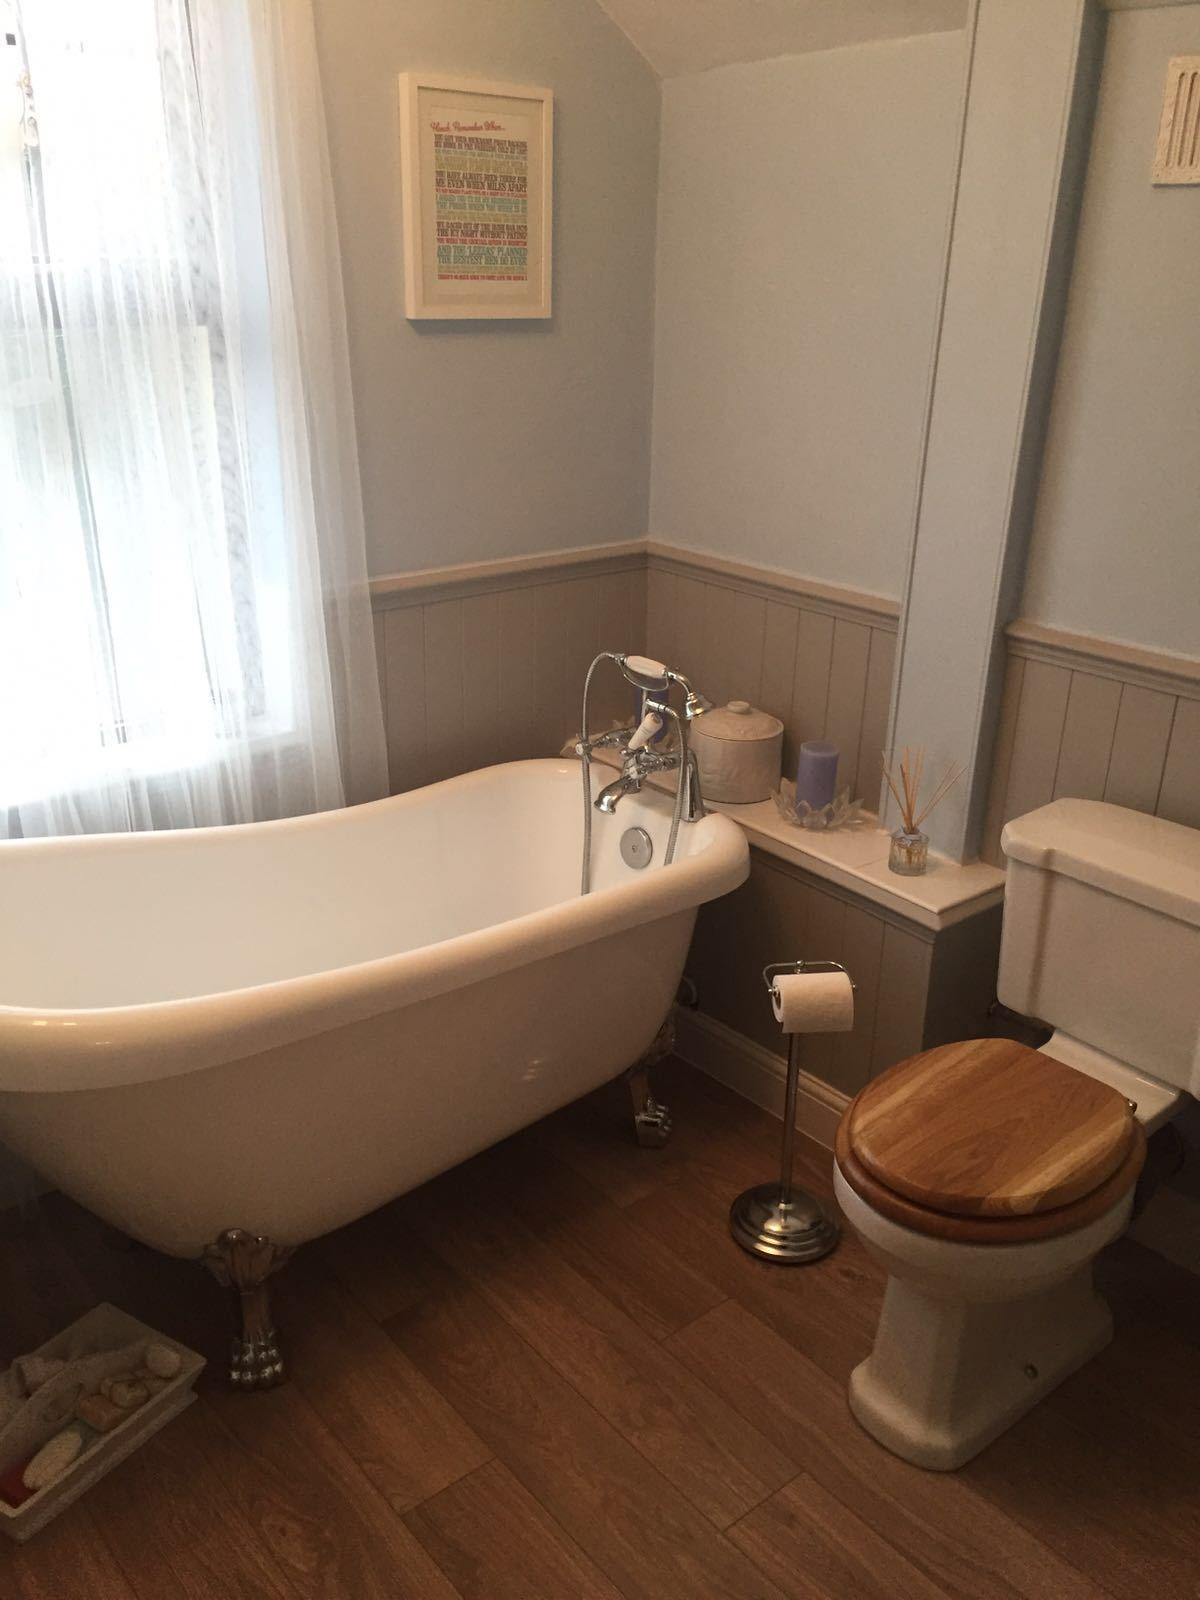 Newly fitted bathroom in Suffolk, all work carried out by Scarlett Electrical including plumbing, cladding, tiling, flooring, skirting boards, electrics and decorating